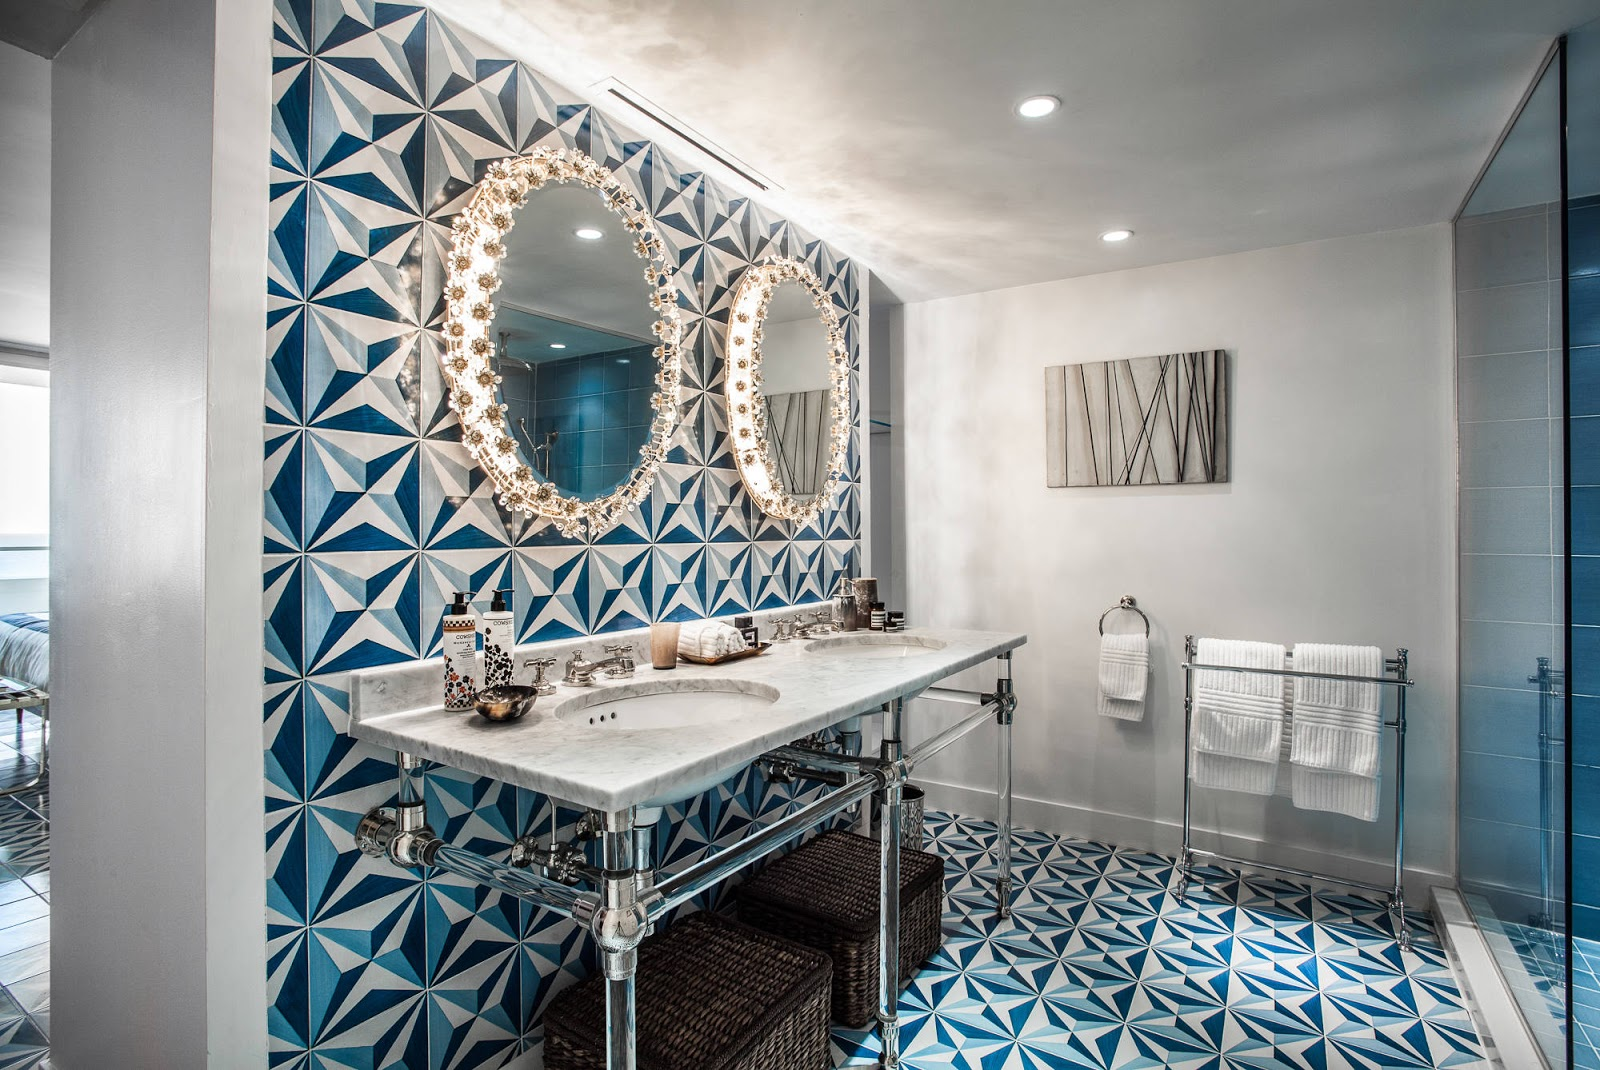 Astounding 3 Piece Bathroom Rug Sets That Nicely Complete ...